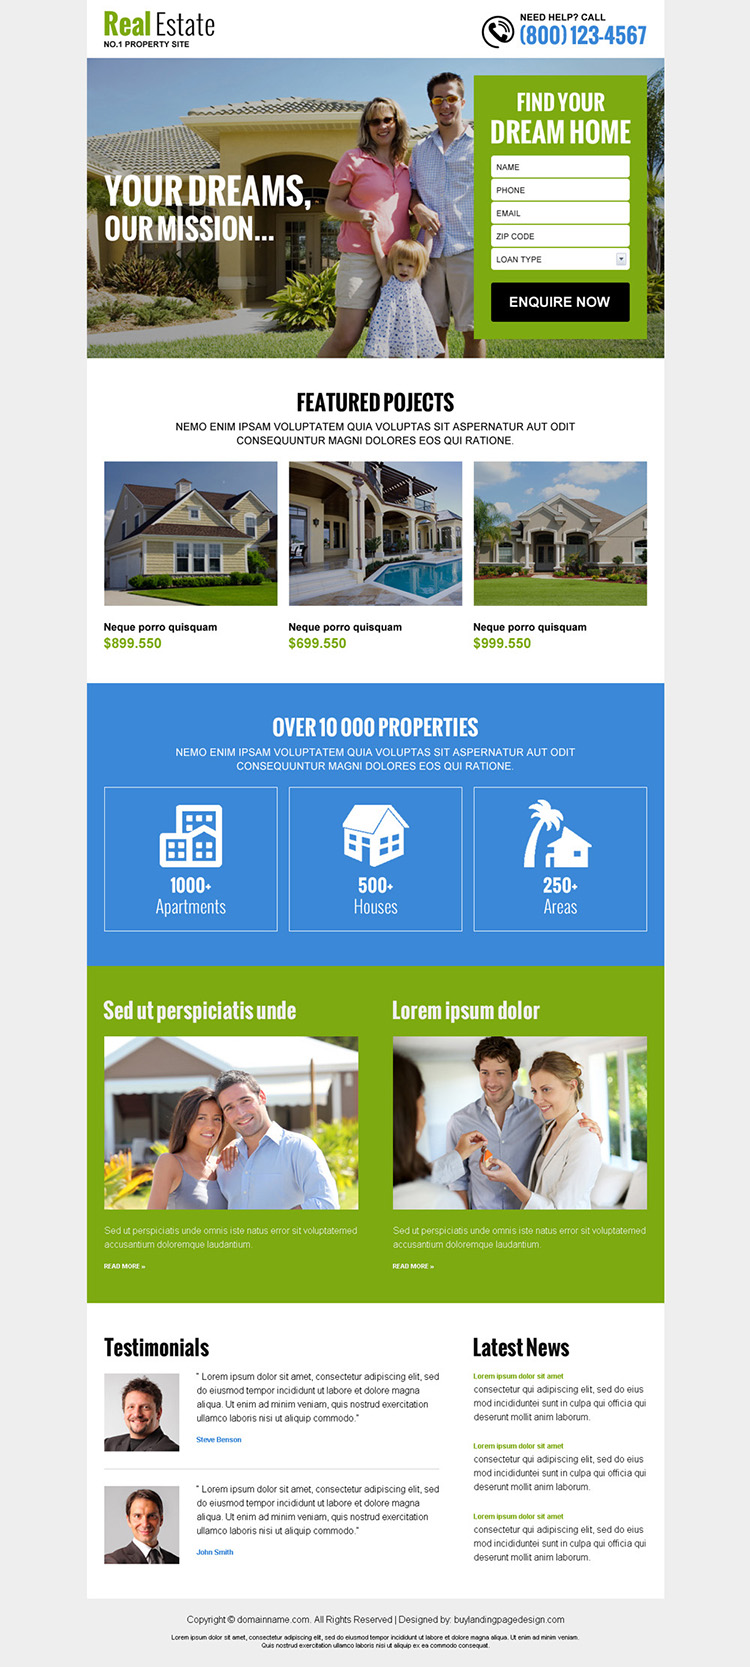 real estate listing best responsive landing page design